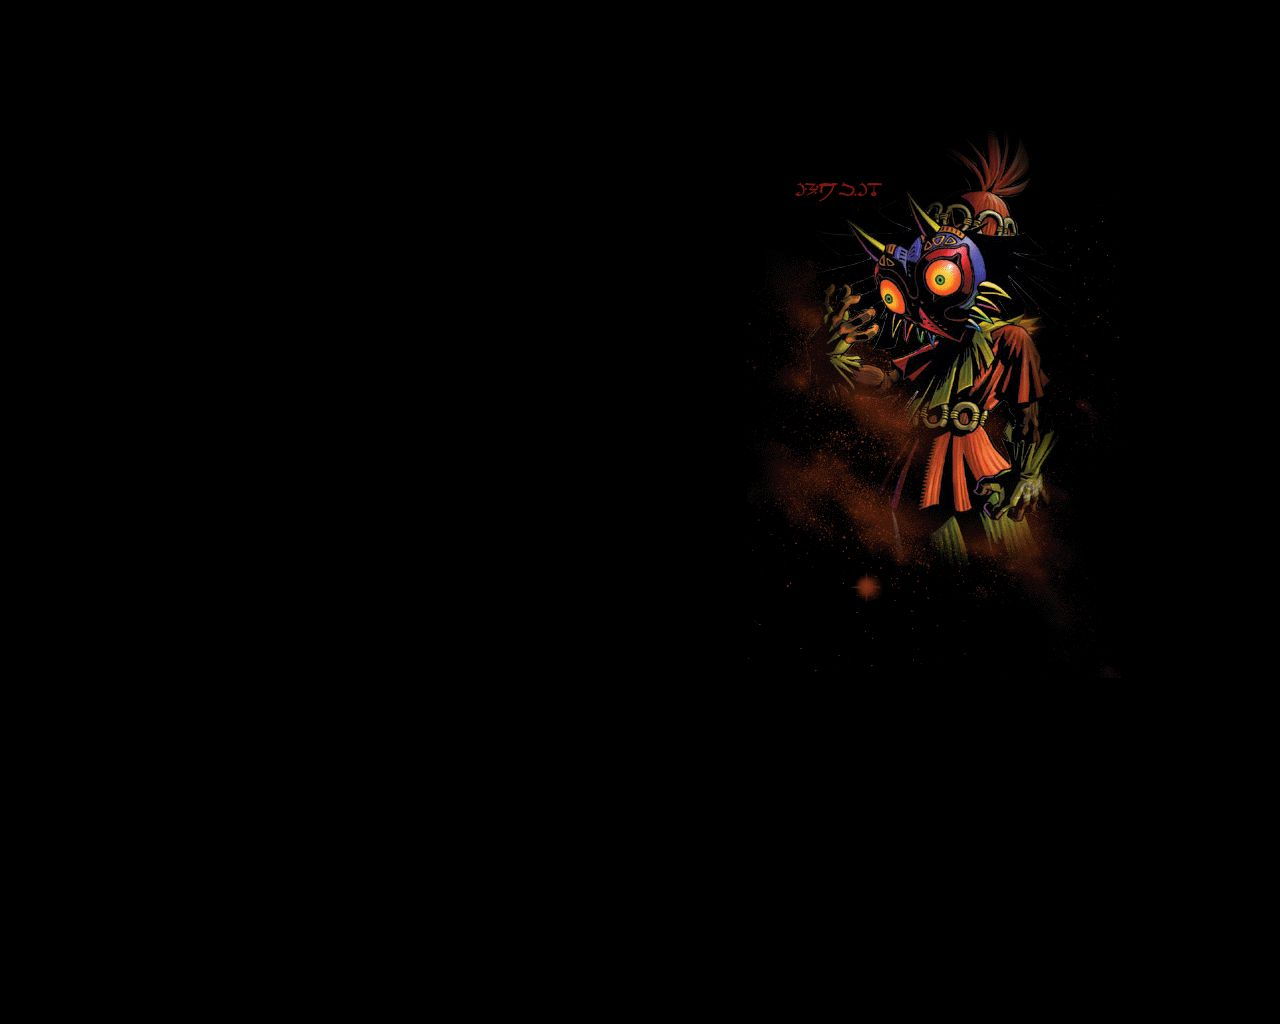 Zelda Skull Kid Wallpaper